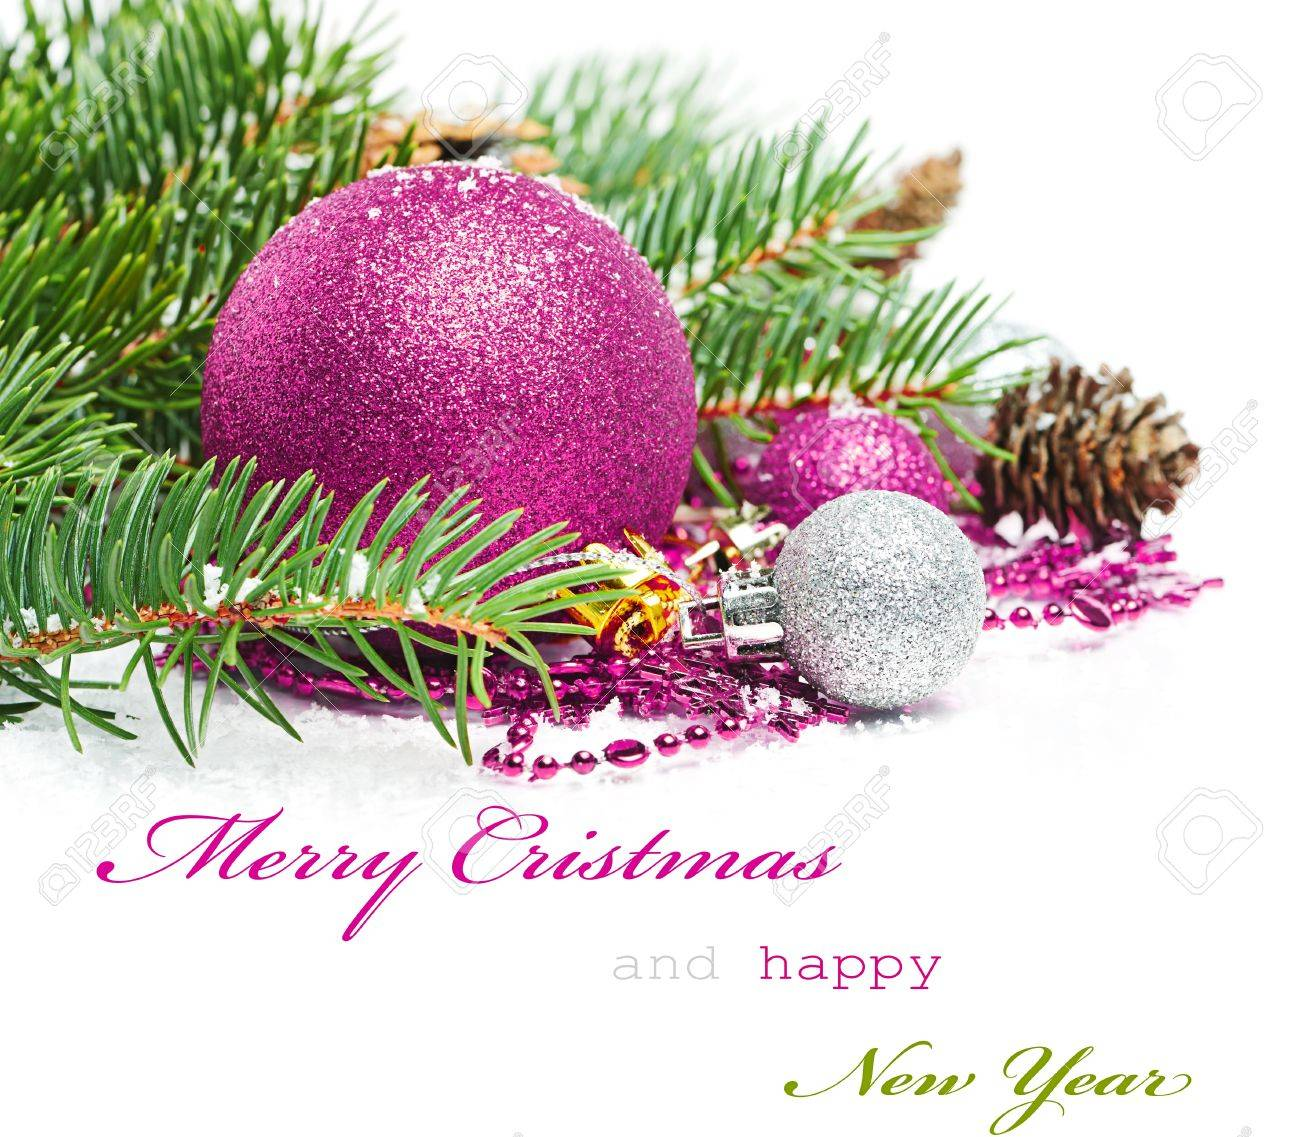 Christmas Greetings Card Stock Photo Picture And Royalty Free Image